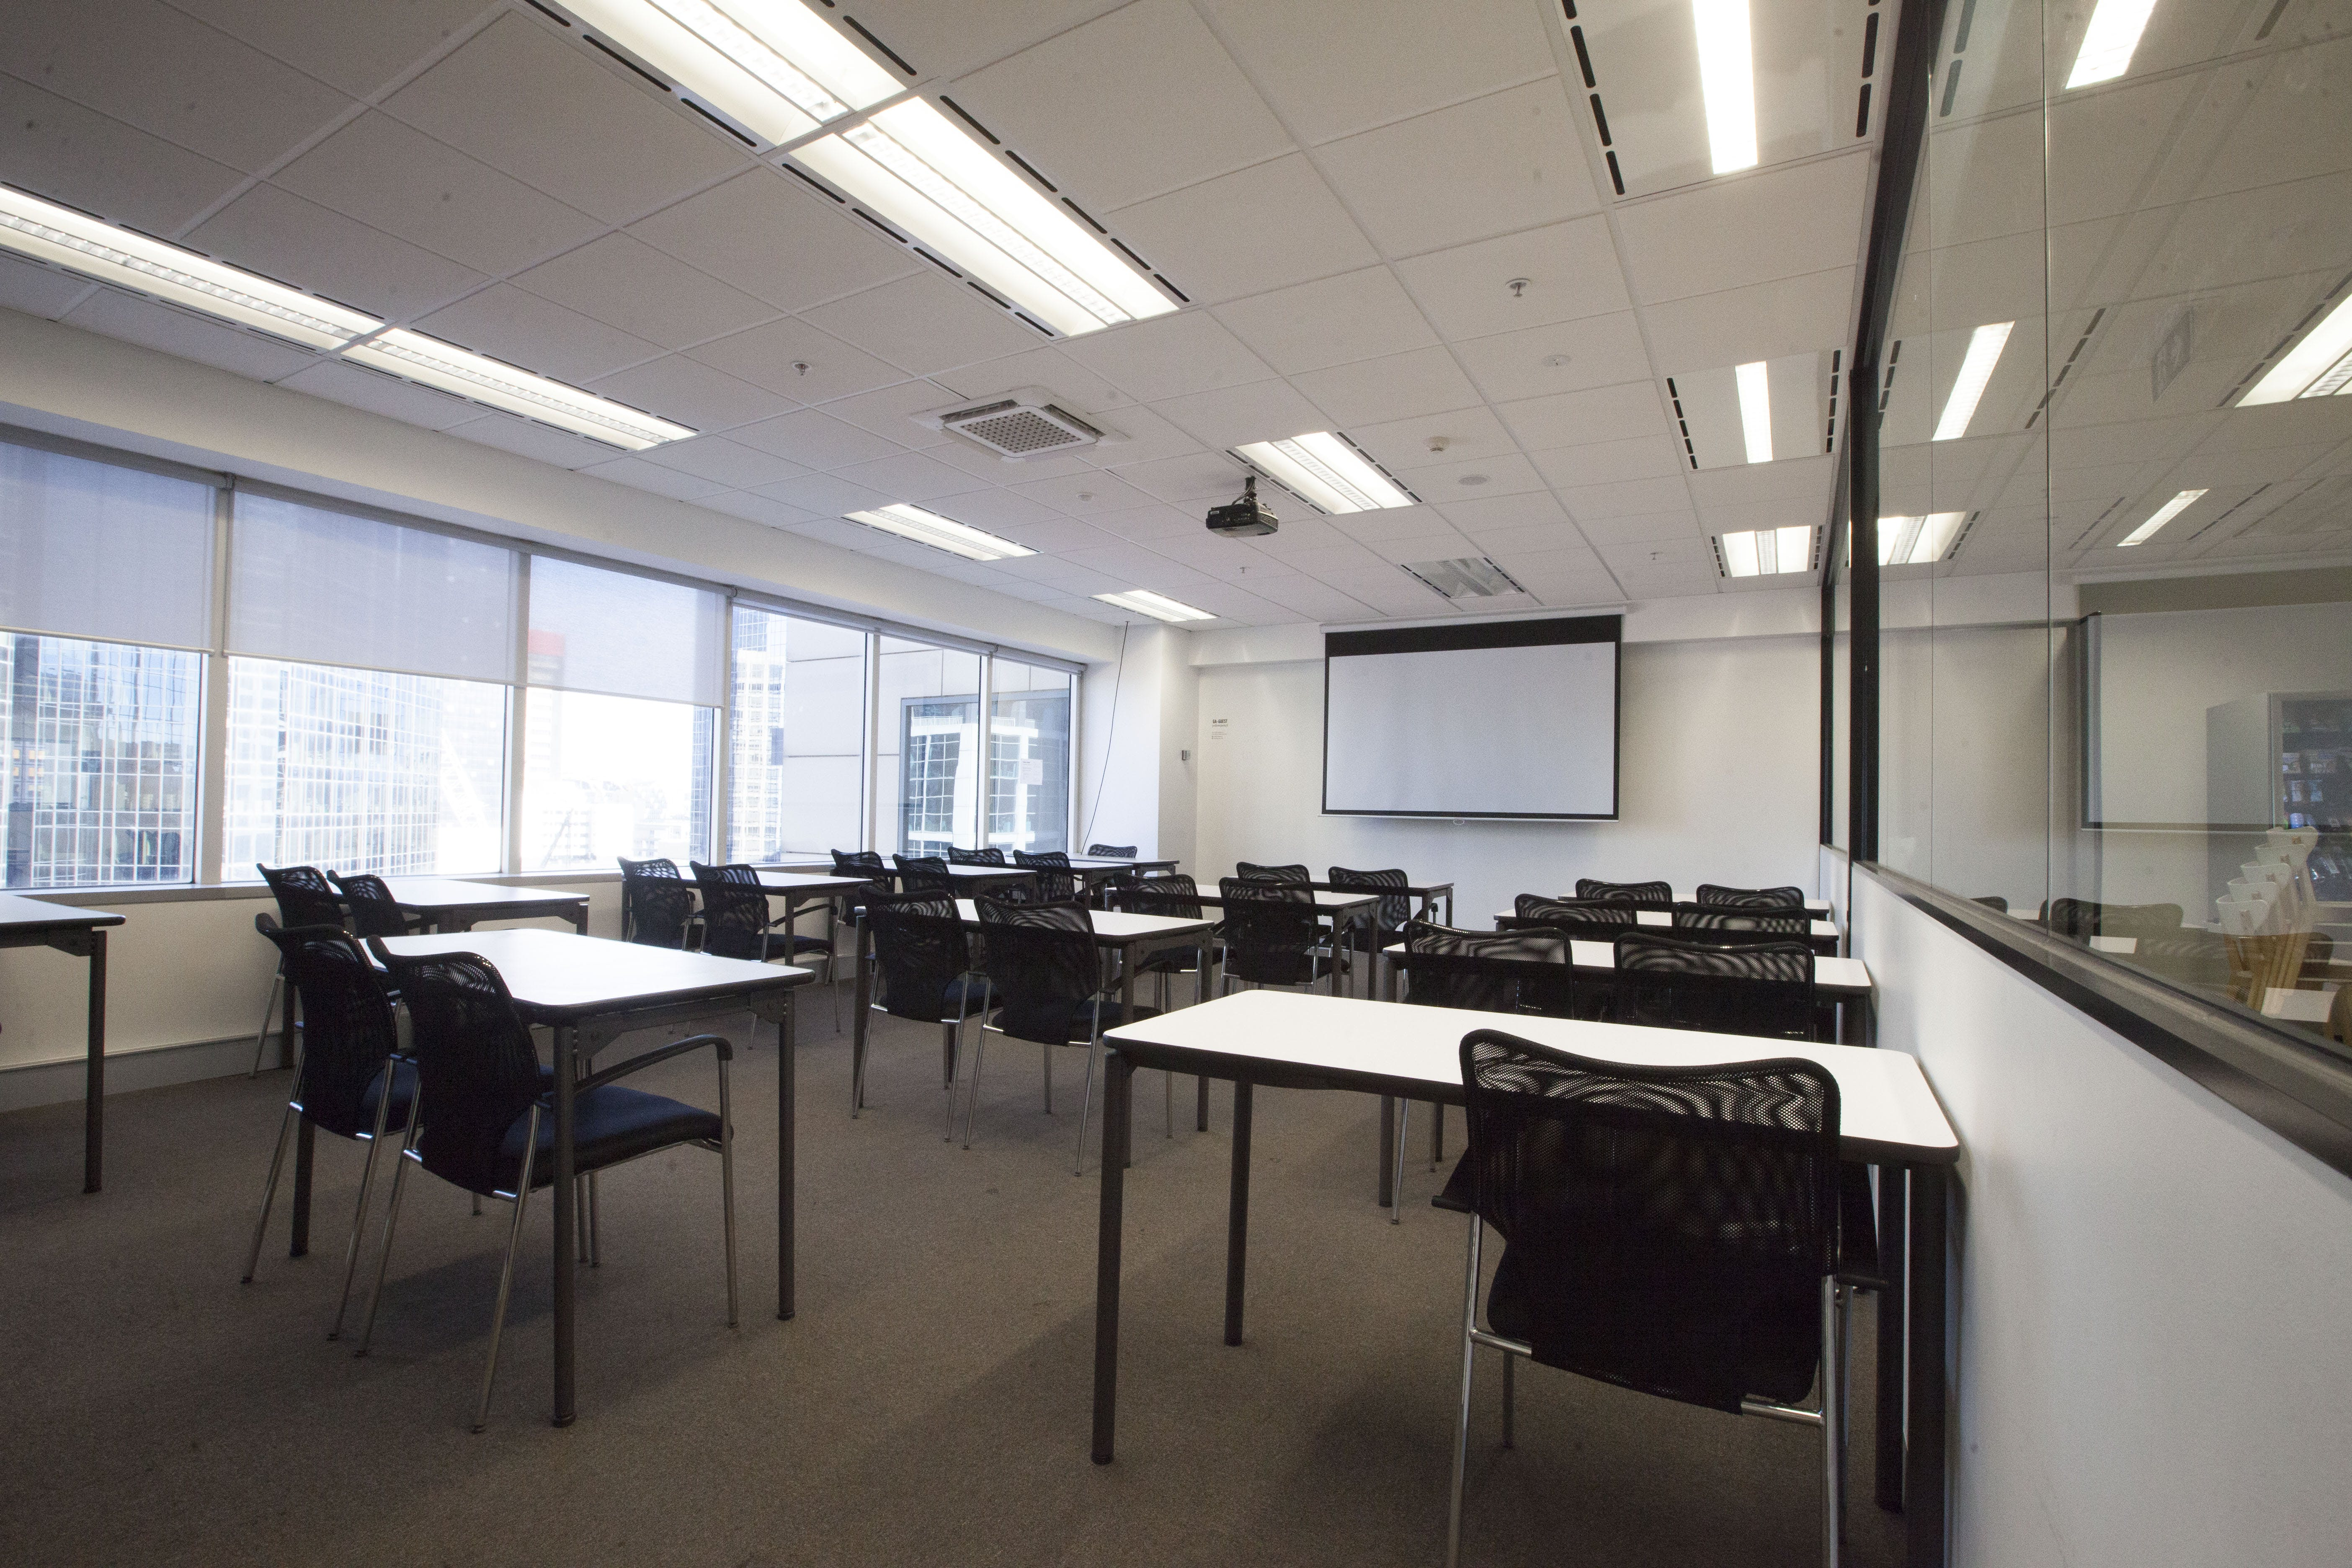 Classroom One, training room at General Assembly, image 1